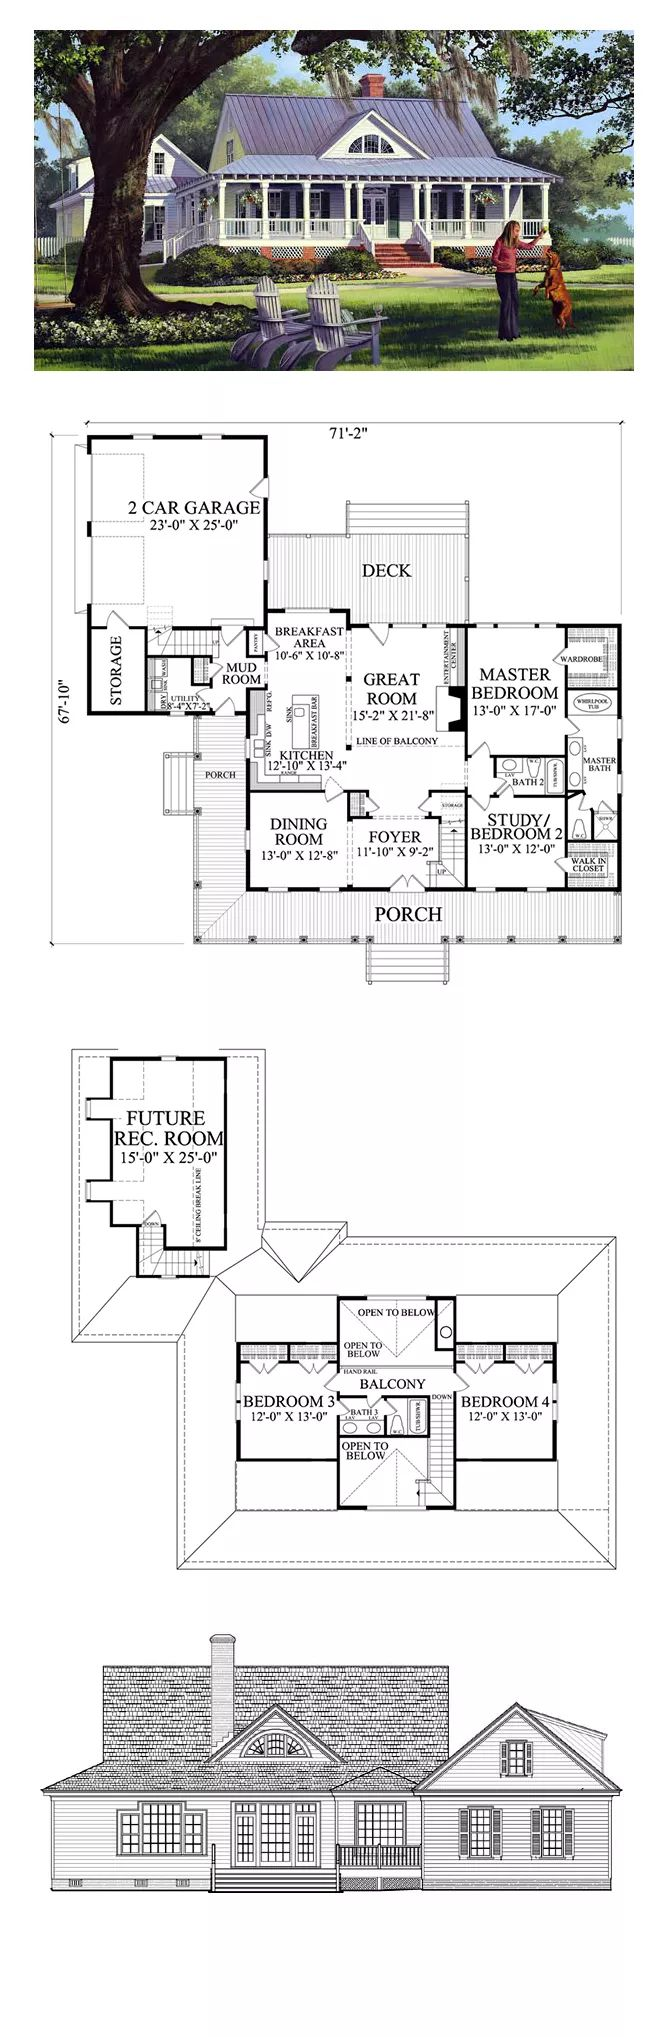 62 best country house plans images on pinterest country house 8b9466506e58ae786dca24e1b6eaaad0 webp 664 2037